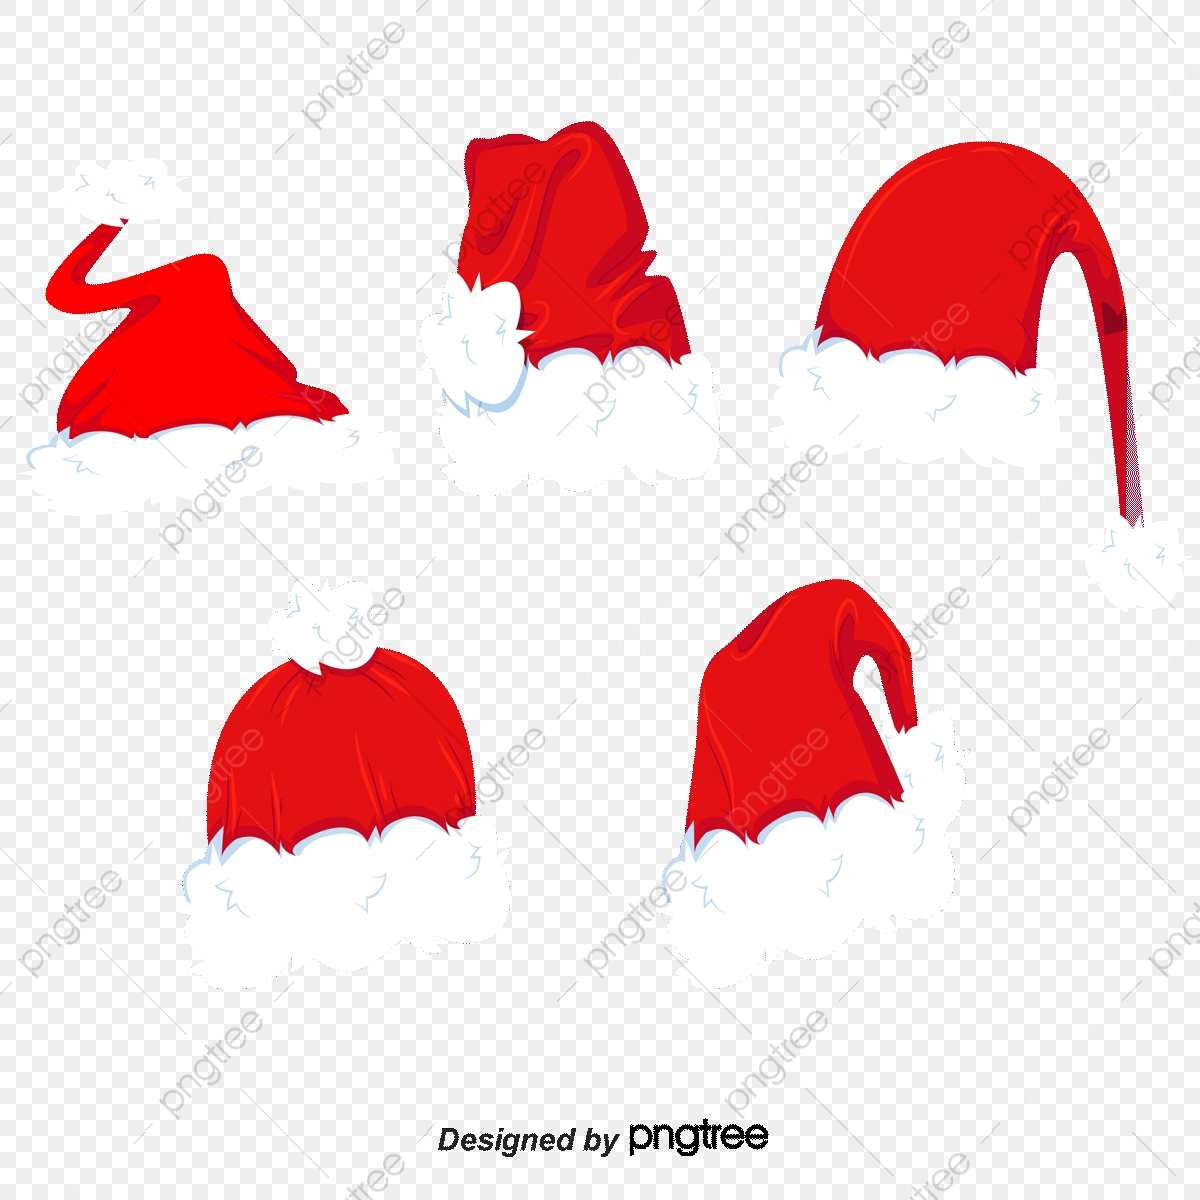 Christmas Hat Vector Png.Holiday Decorations Christmas Hat Vector Christmas Vector